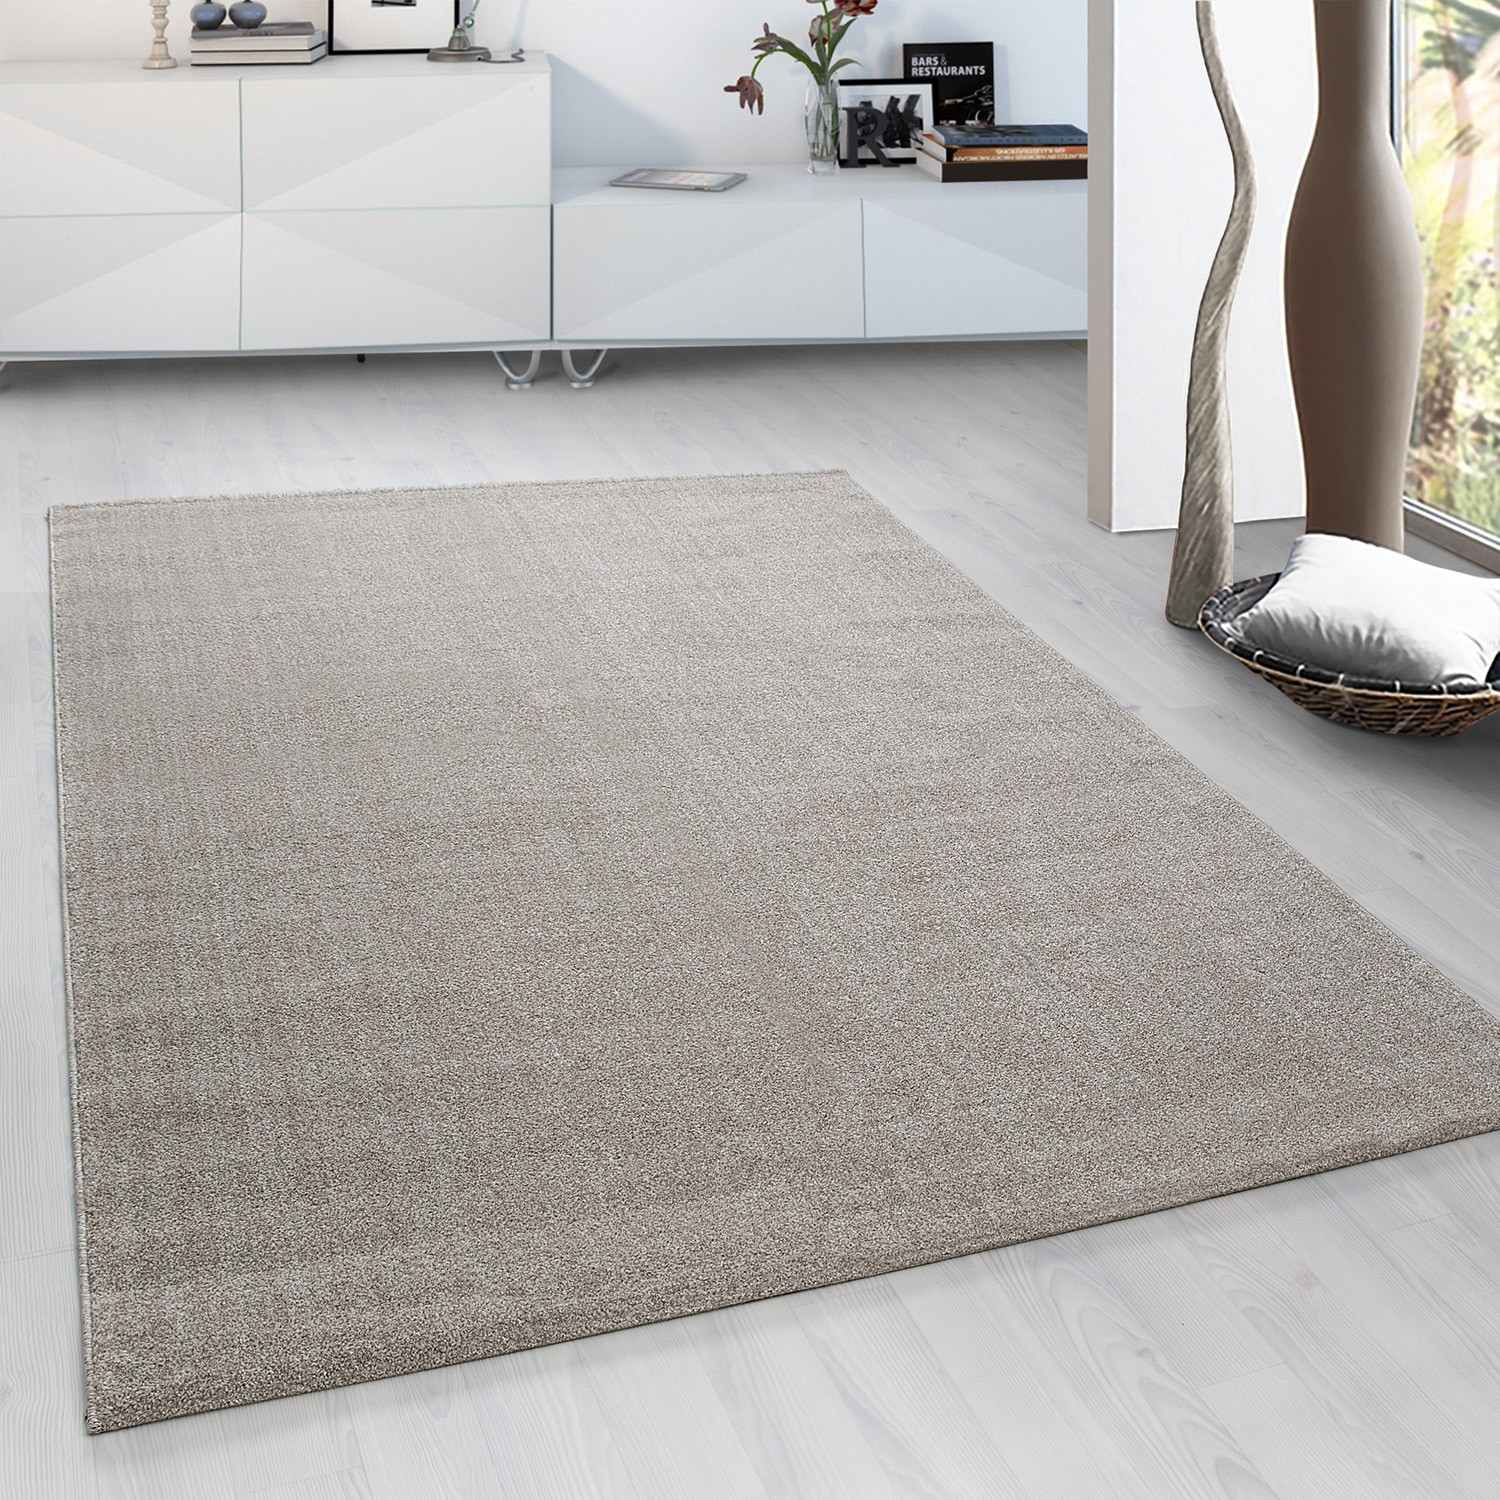 tapis courtes mches microfibre doux taupe beige velluto - Tapis Taupe